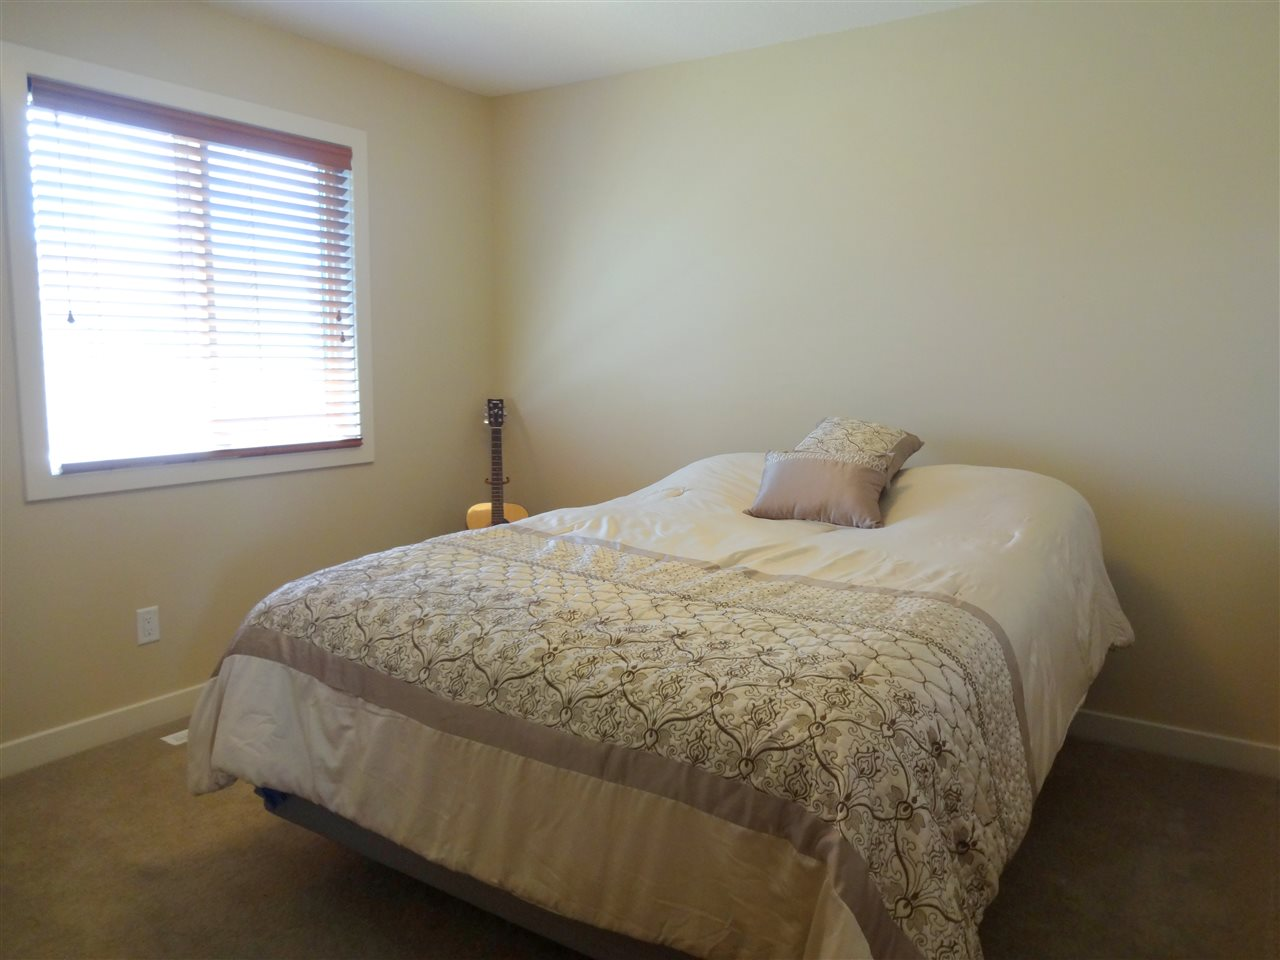 Second Bedroom is a good size with ample room.